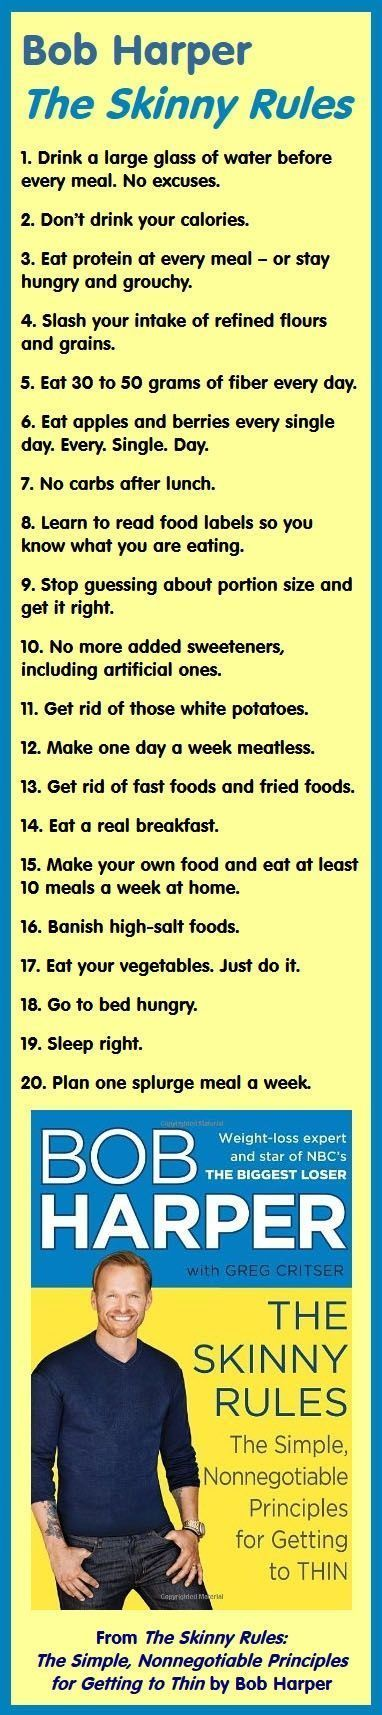 https://paleo-diet-menu.blogspot.com/ See more here ► www.youtube.com/... Tags: how to lose weight quickly for free, quickest way to lose weight after having a baby, best quick weight loss - Best foods to eat to lose weight Bob Harper The skinny Rules Do you wanna lose some weight or just to learn a new food recipe?Check from where i took my food recipes!